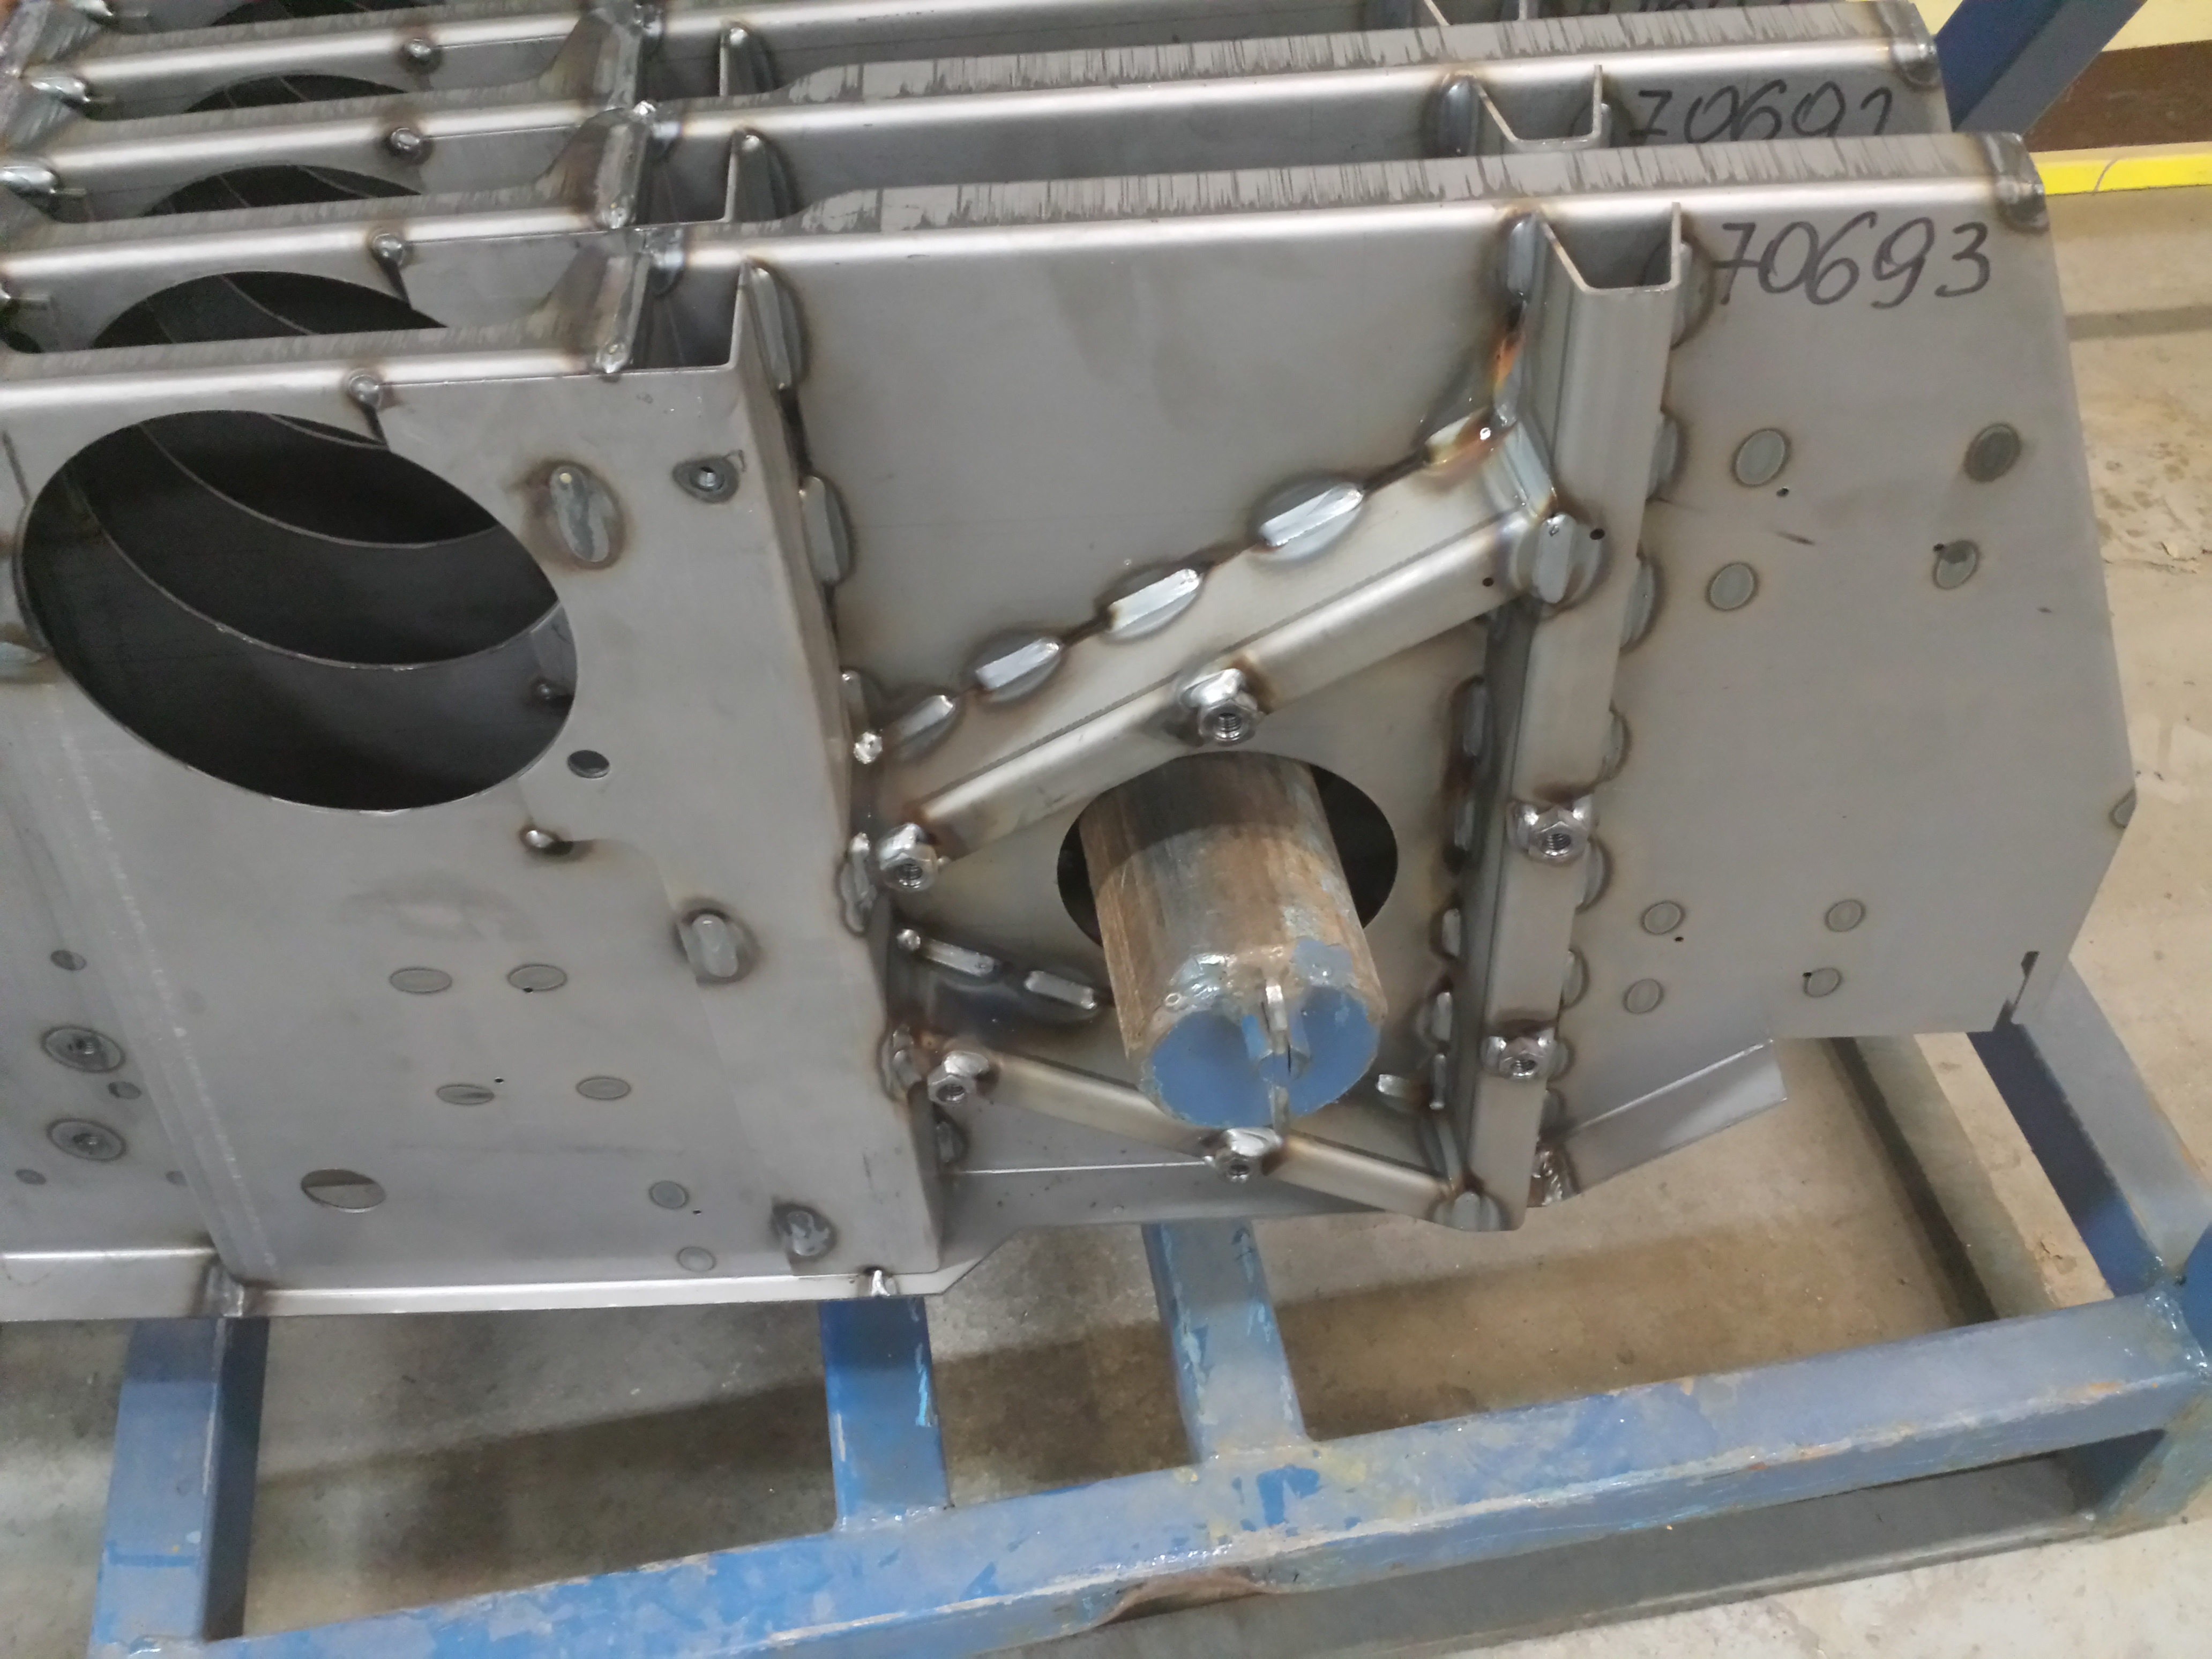 Robotic Welding Uk And Ireland Fabricated Products